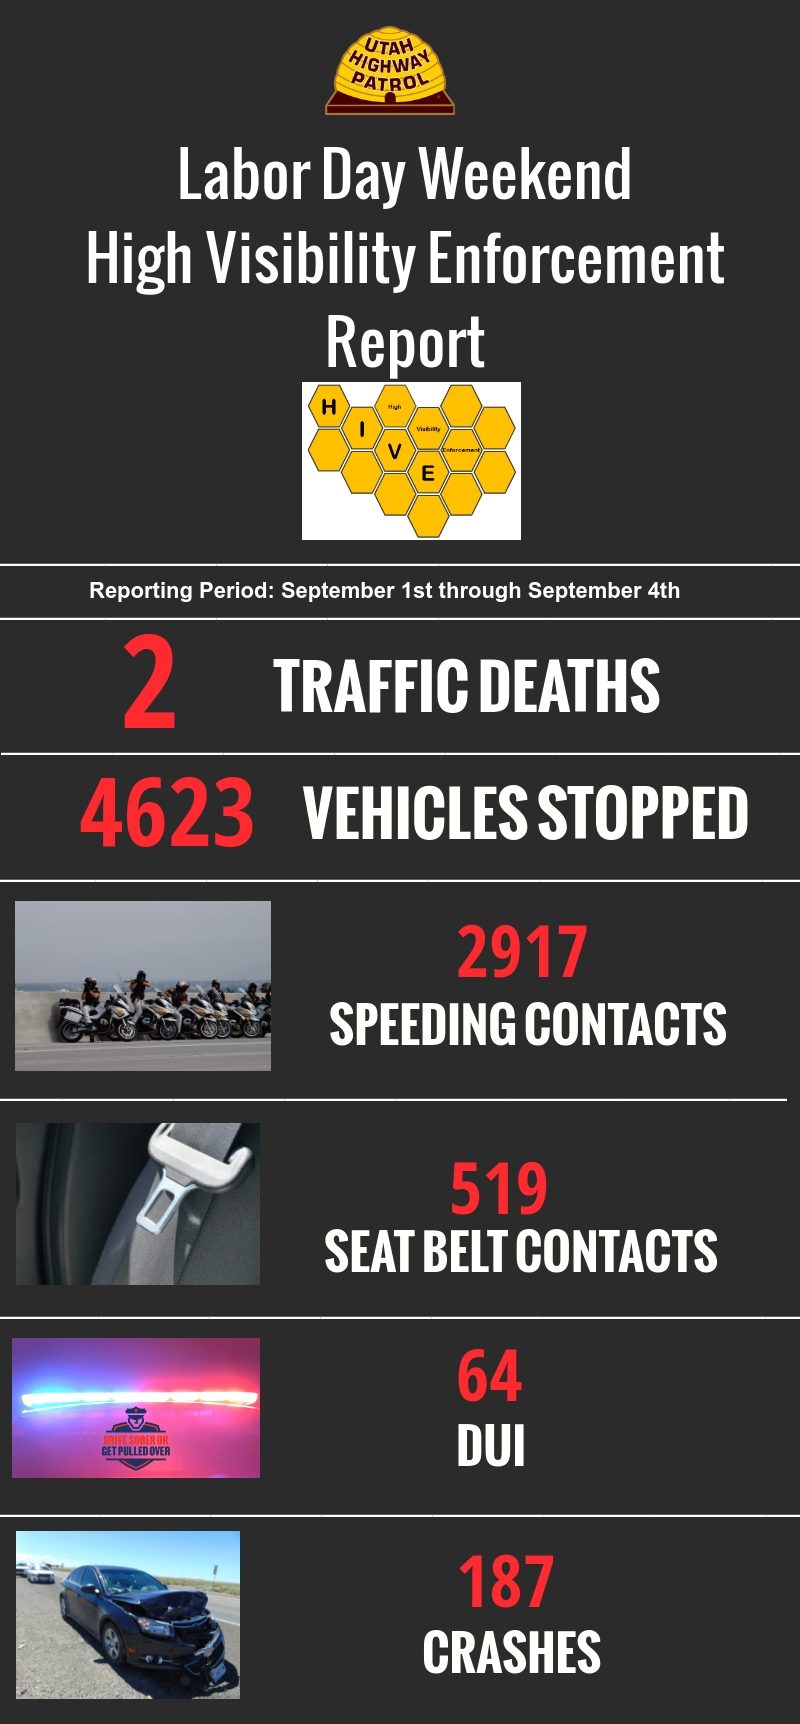 Infographic with details about UHP's weekend high visibility enforcement efforts